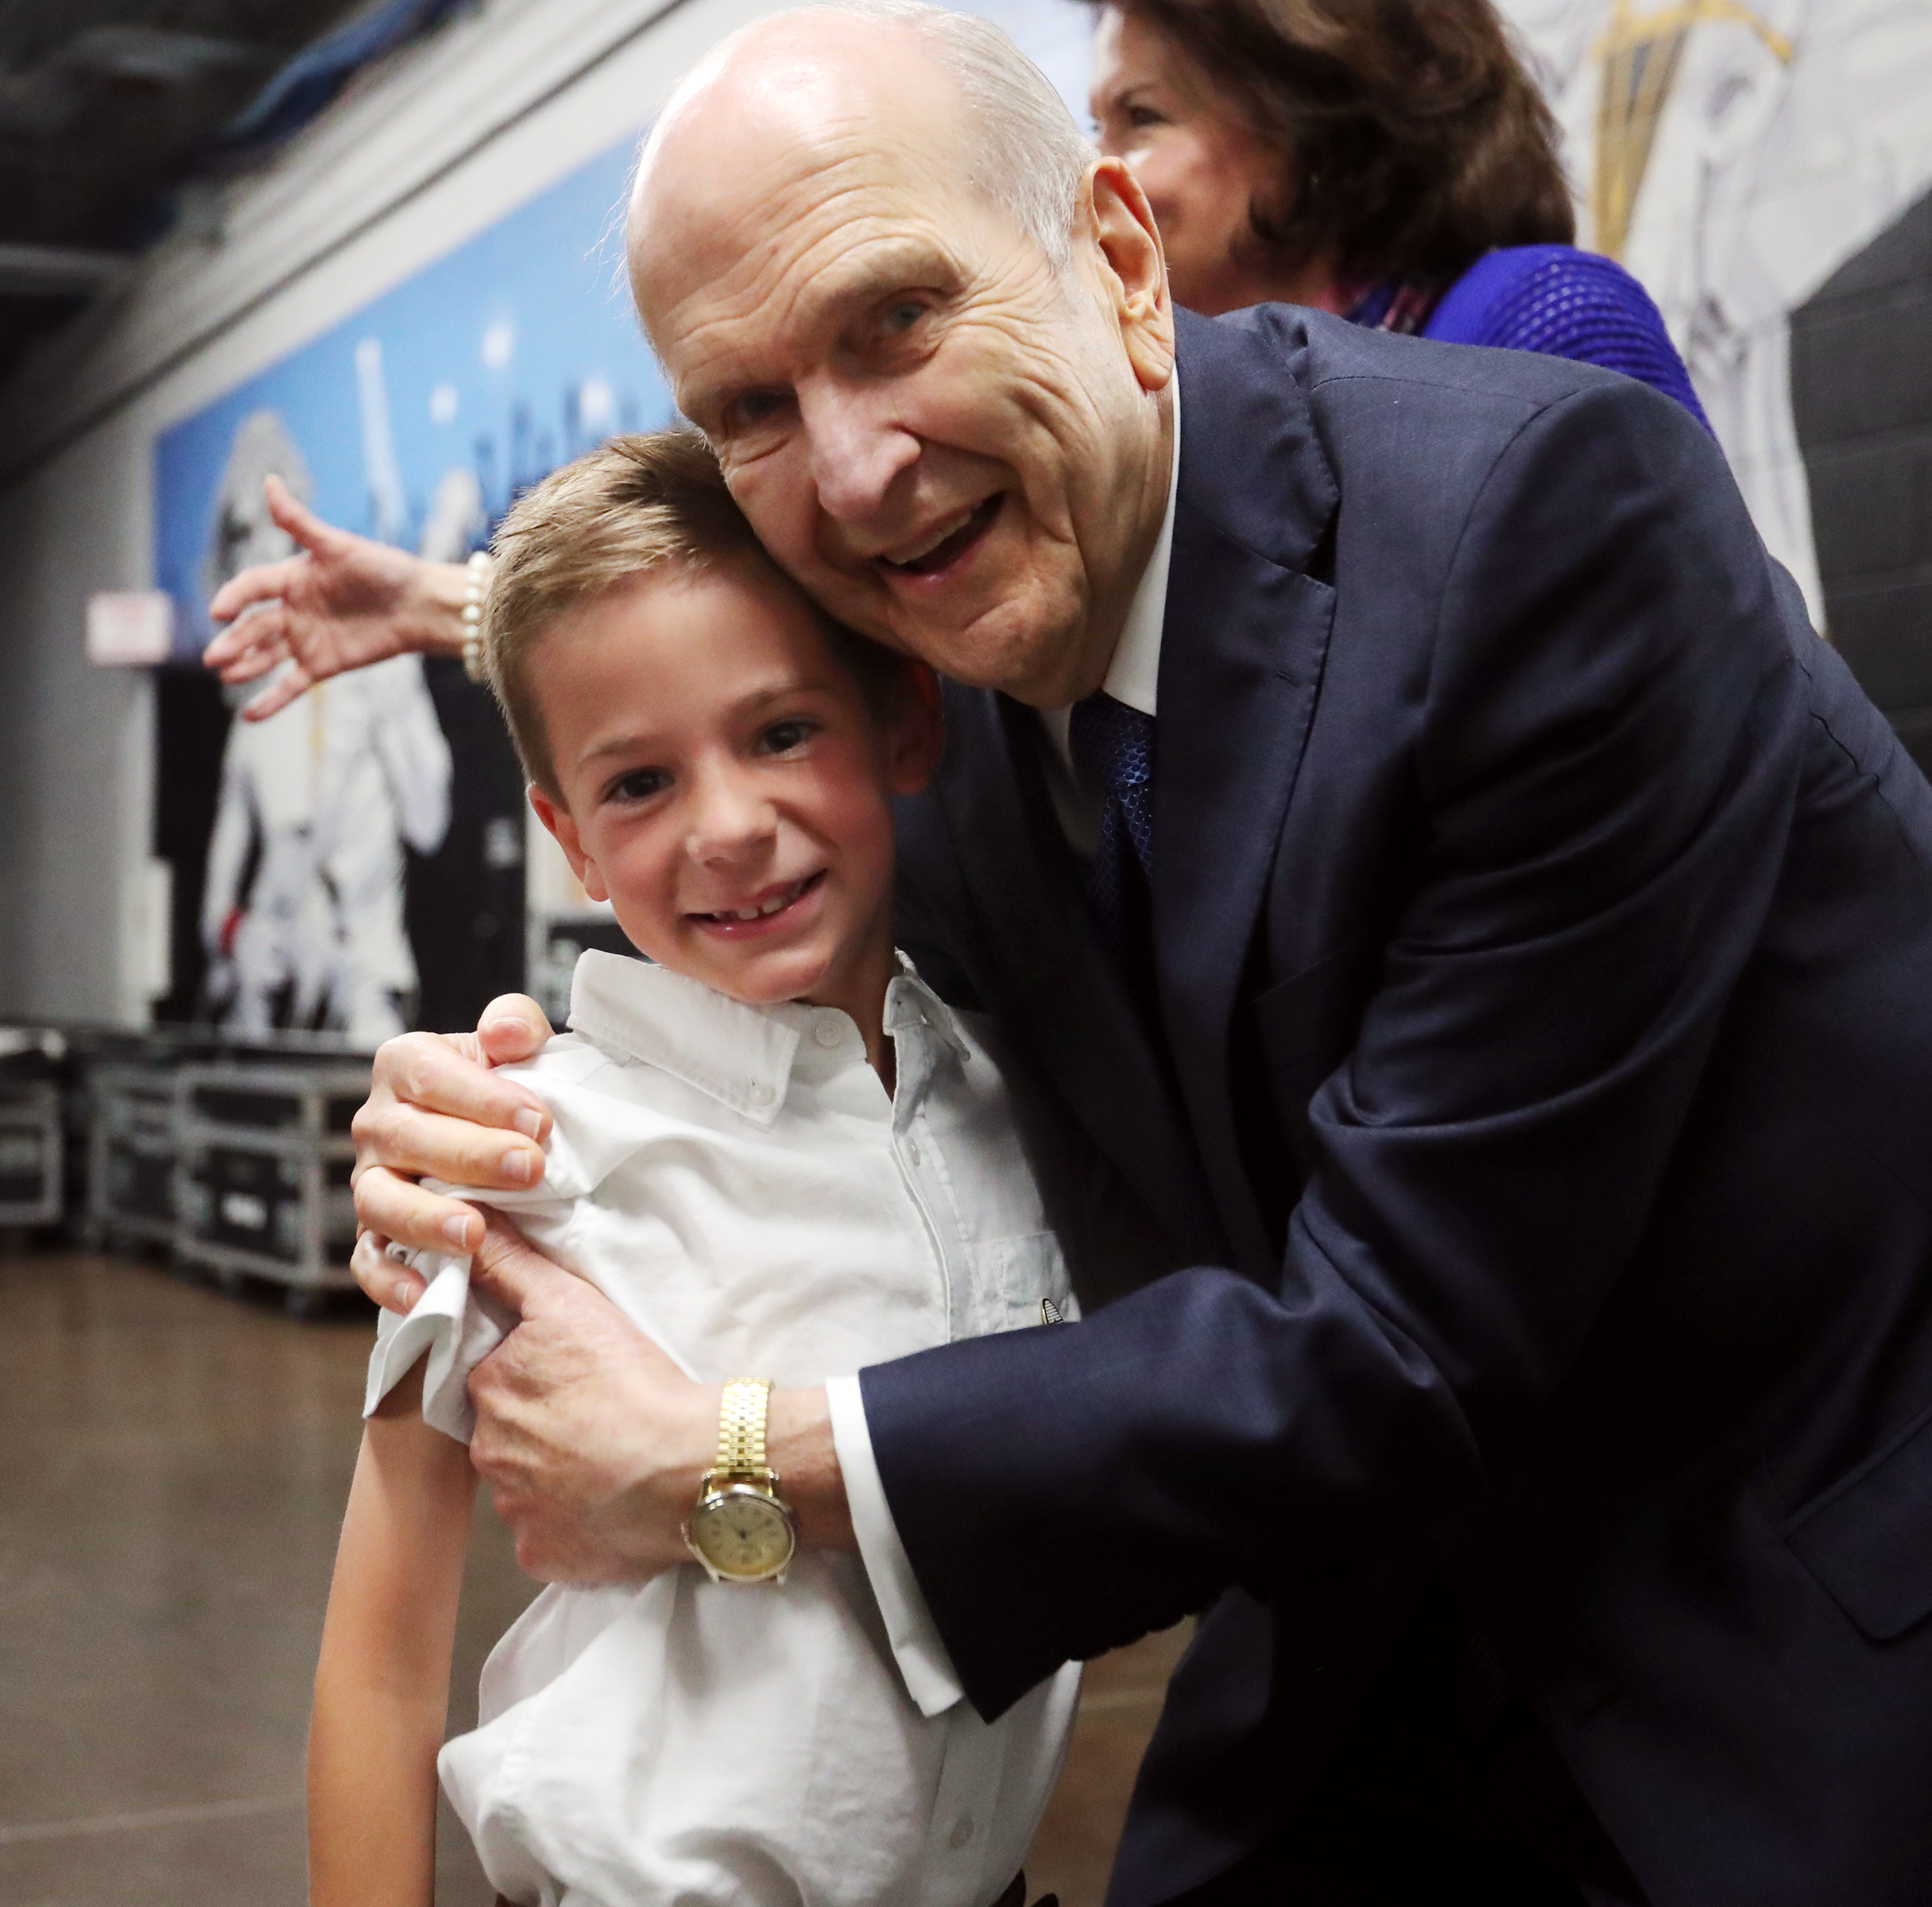 President Russell M. Nelson hugs his great grandson Eli Webster prior to a devotional at the Amway Center in Orlando, Florida, on Sunday, June 9, 2019.